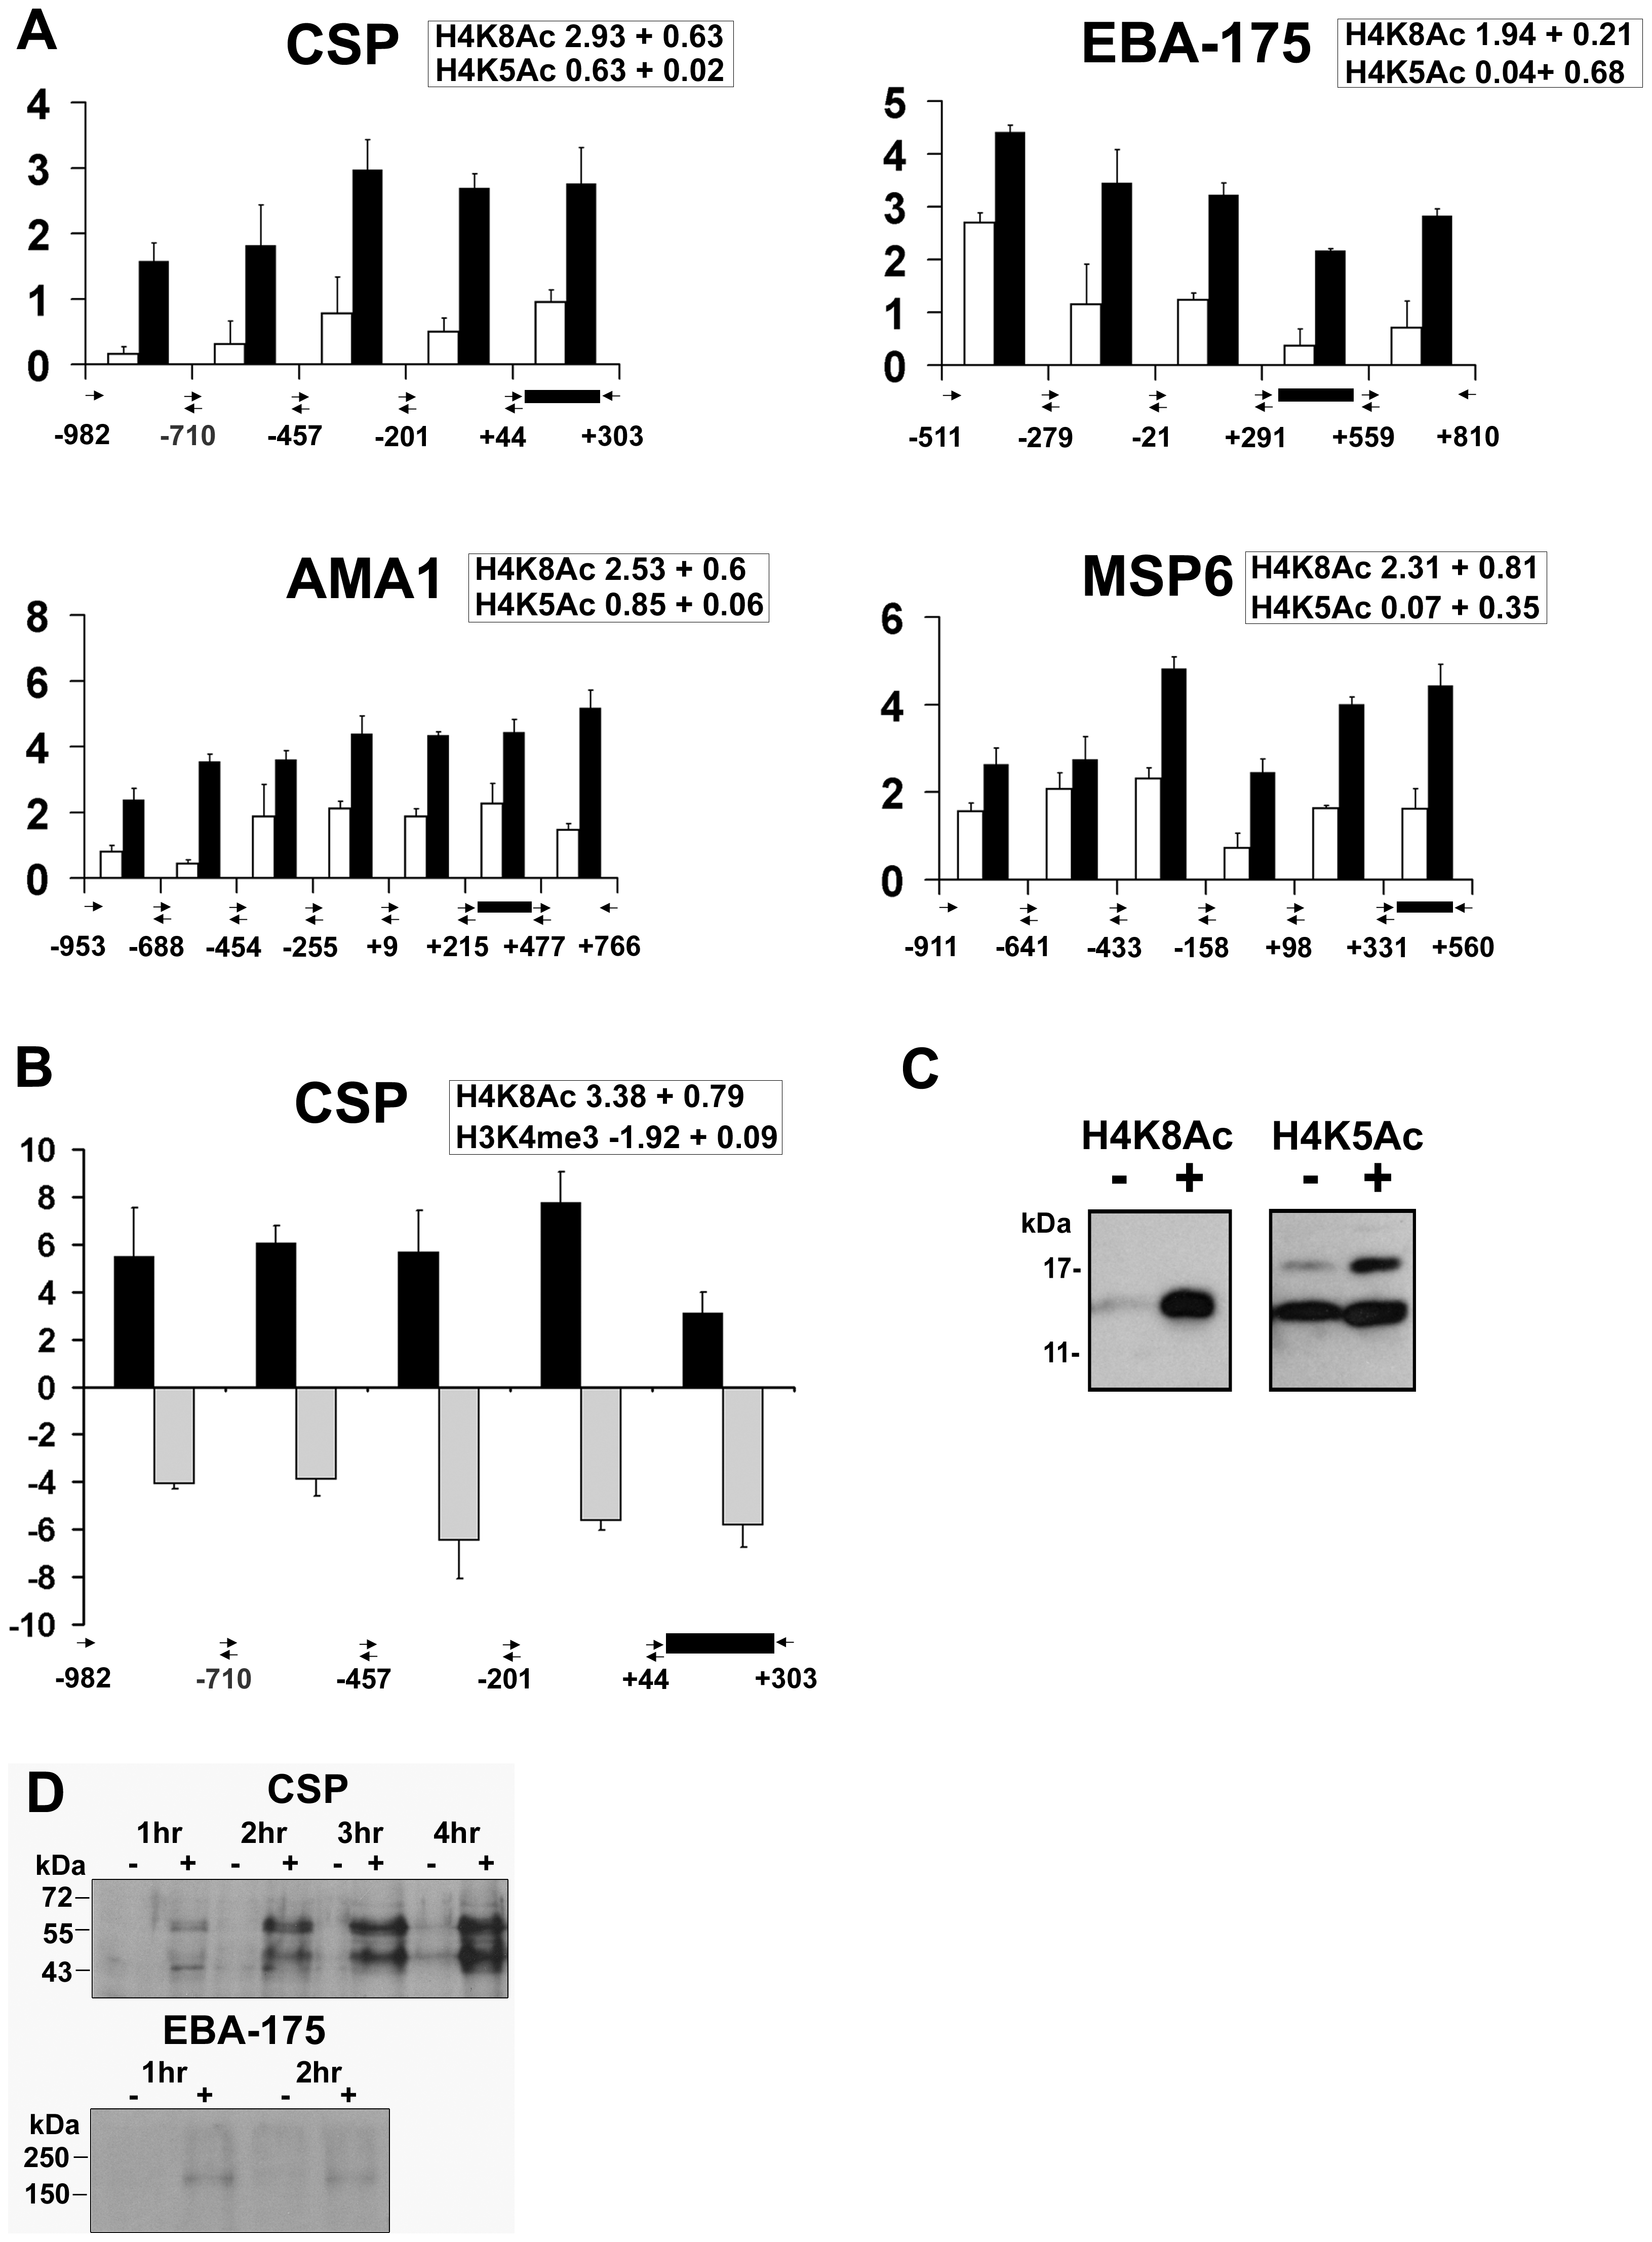 Apicidin induces histone hyperacetylation along promoter regions and protein expression of <i>P. falciparum</i> genes.